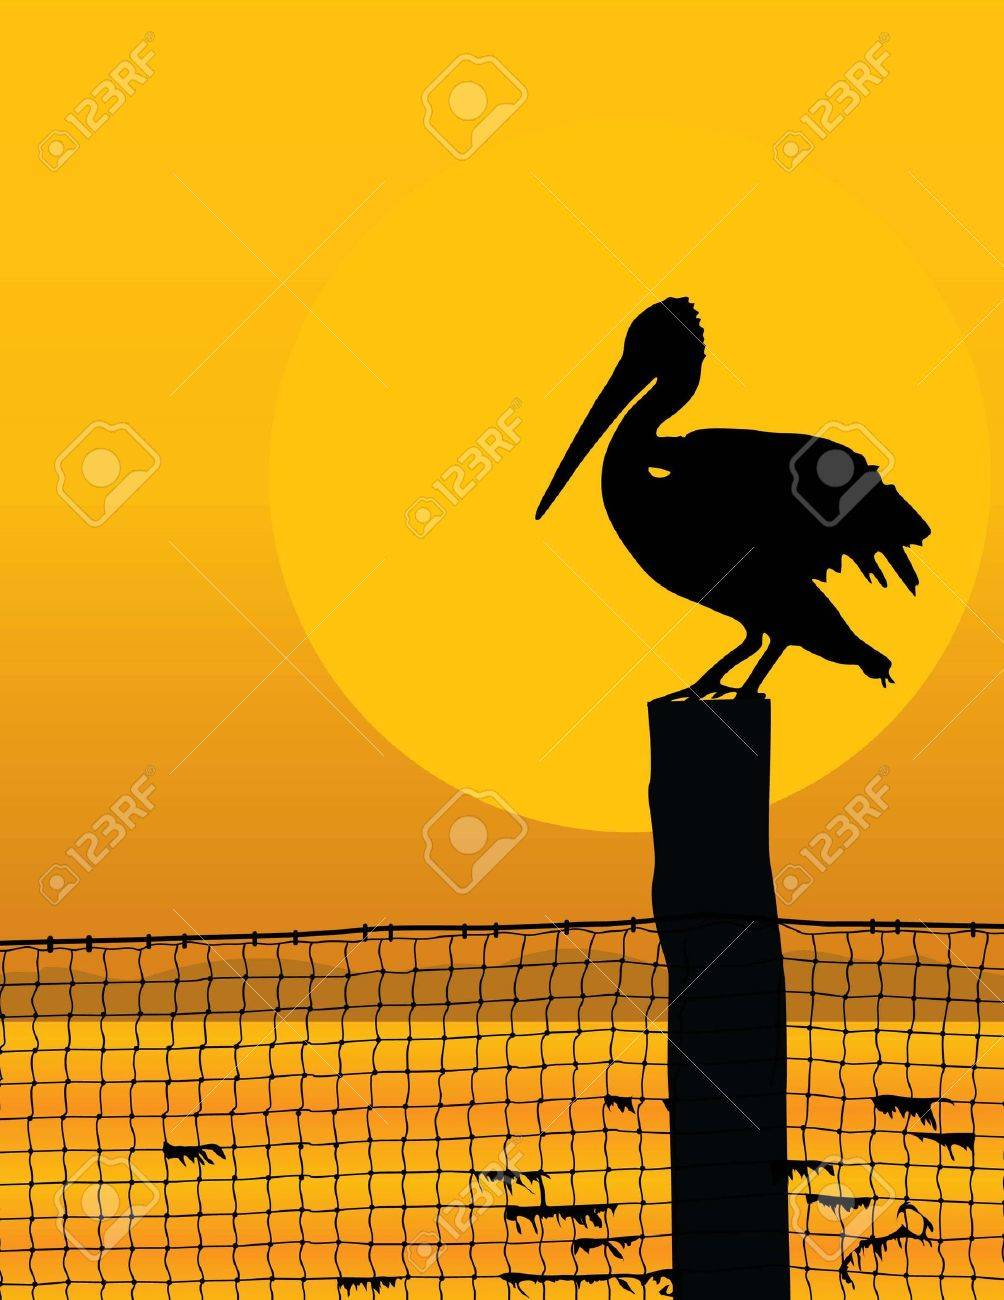 Black silhouette of a pelican against a sunrise/sunset Stock Vector - 2450051